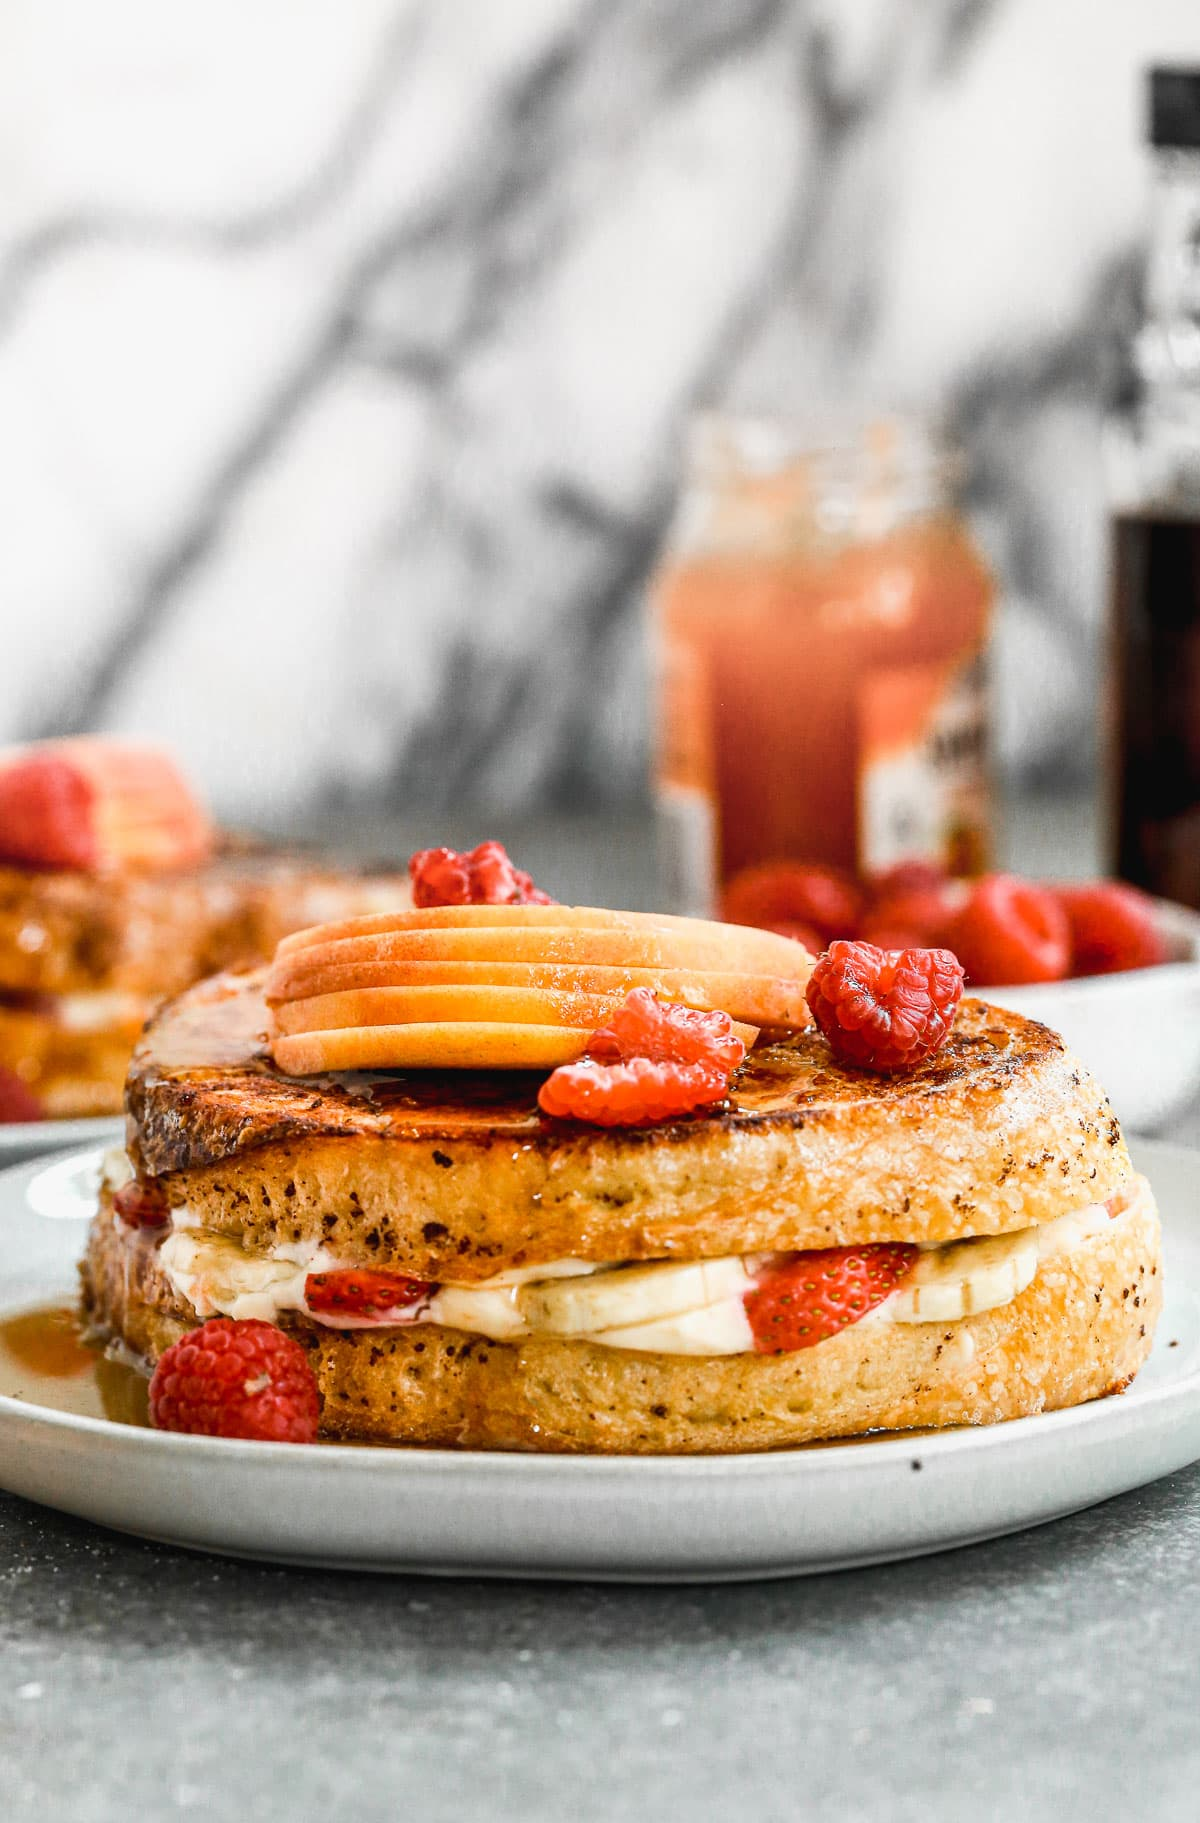 A stuffed french toast sandwich with banana, strawberry, and maple syrup